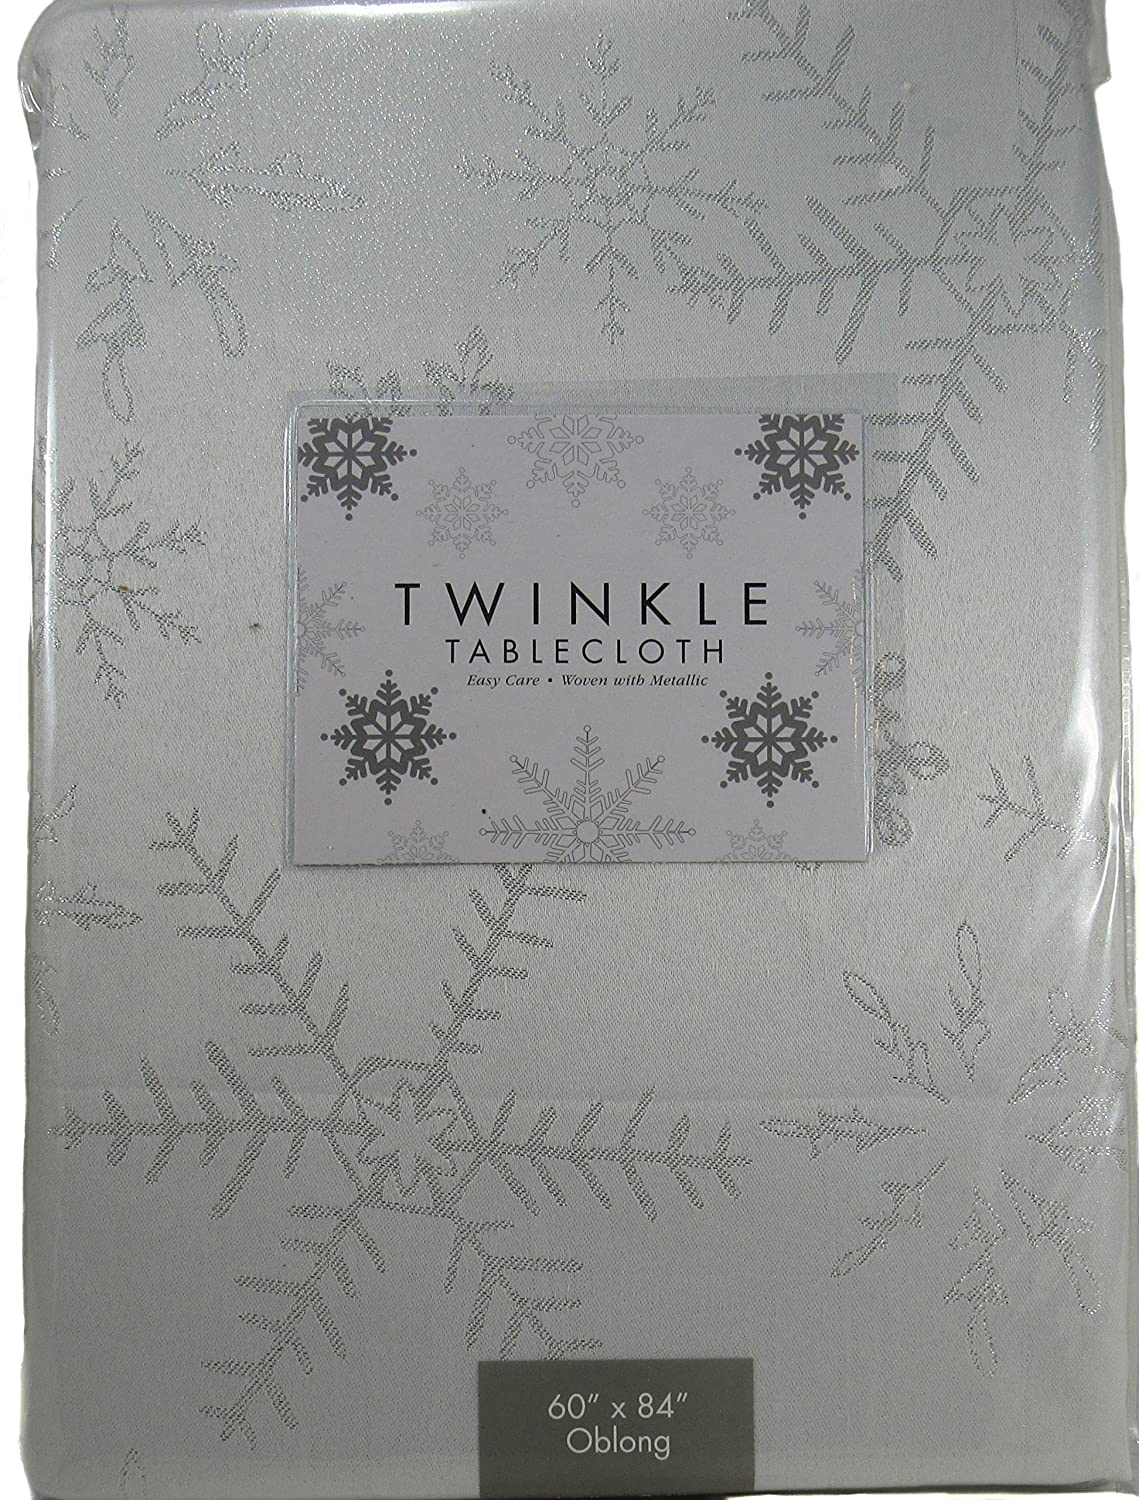 Tablecloth Twinkle Easy Care Ivory Woven with Metallic Snowflakes for Christmas or Holiday 52Wx70L